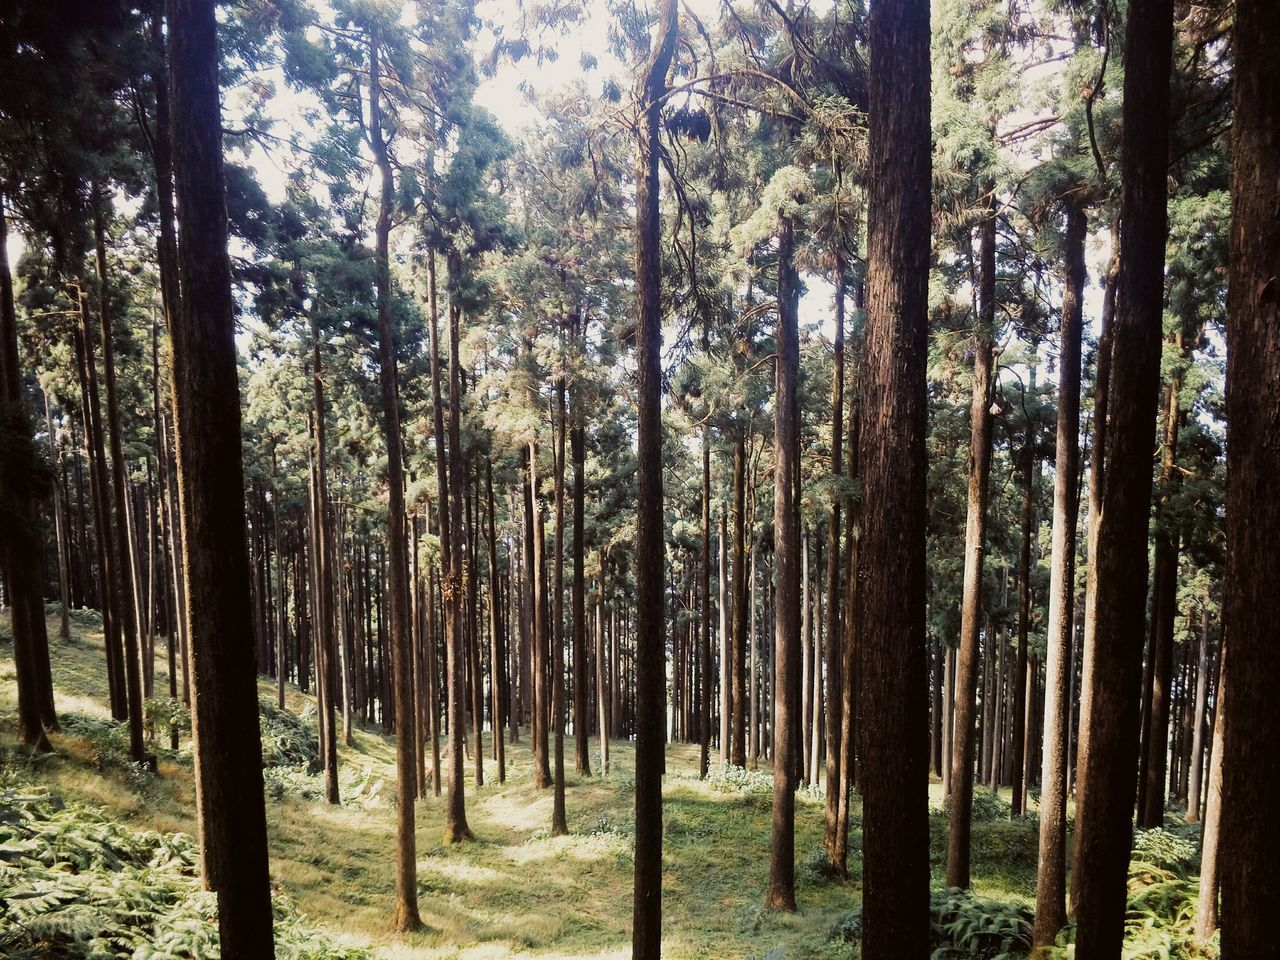 tree, forest, nature, tree trunk, woodland, pine tree, no people, landscape, day, scenics, outdoors, growth, wilderness area, beauty in nature